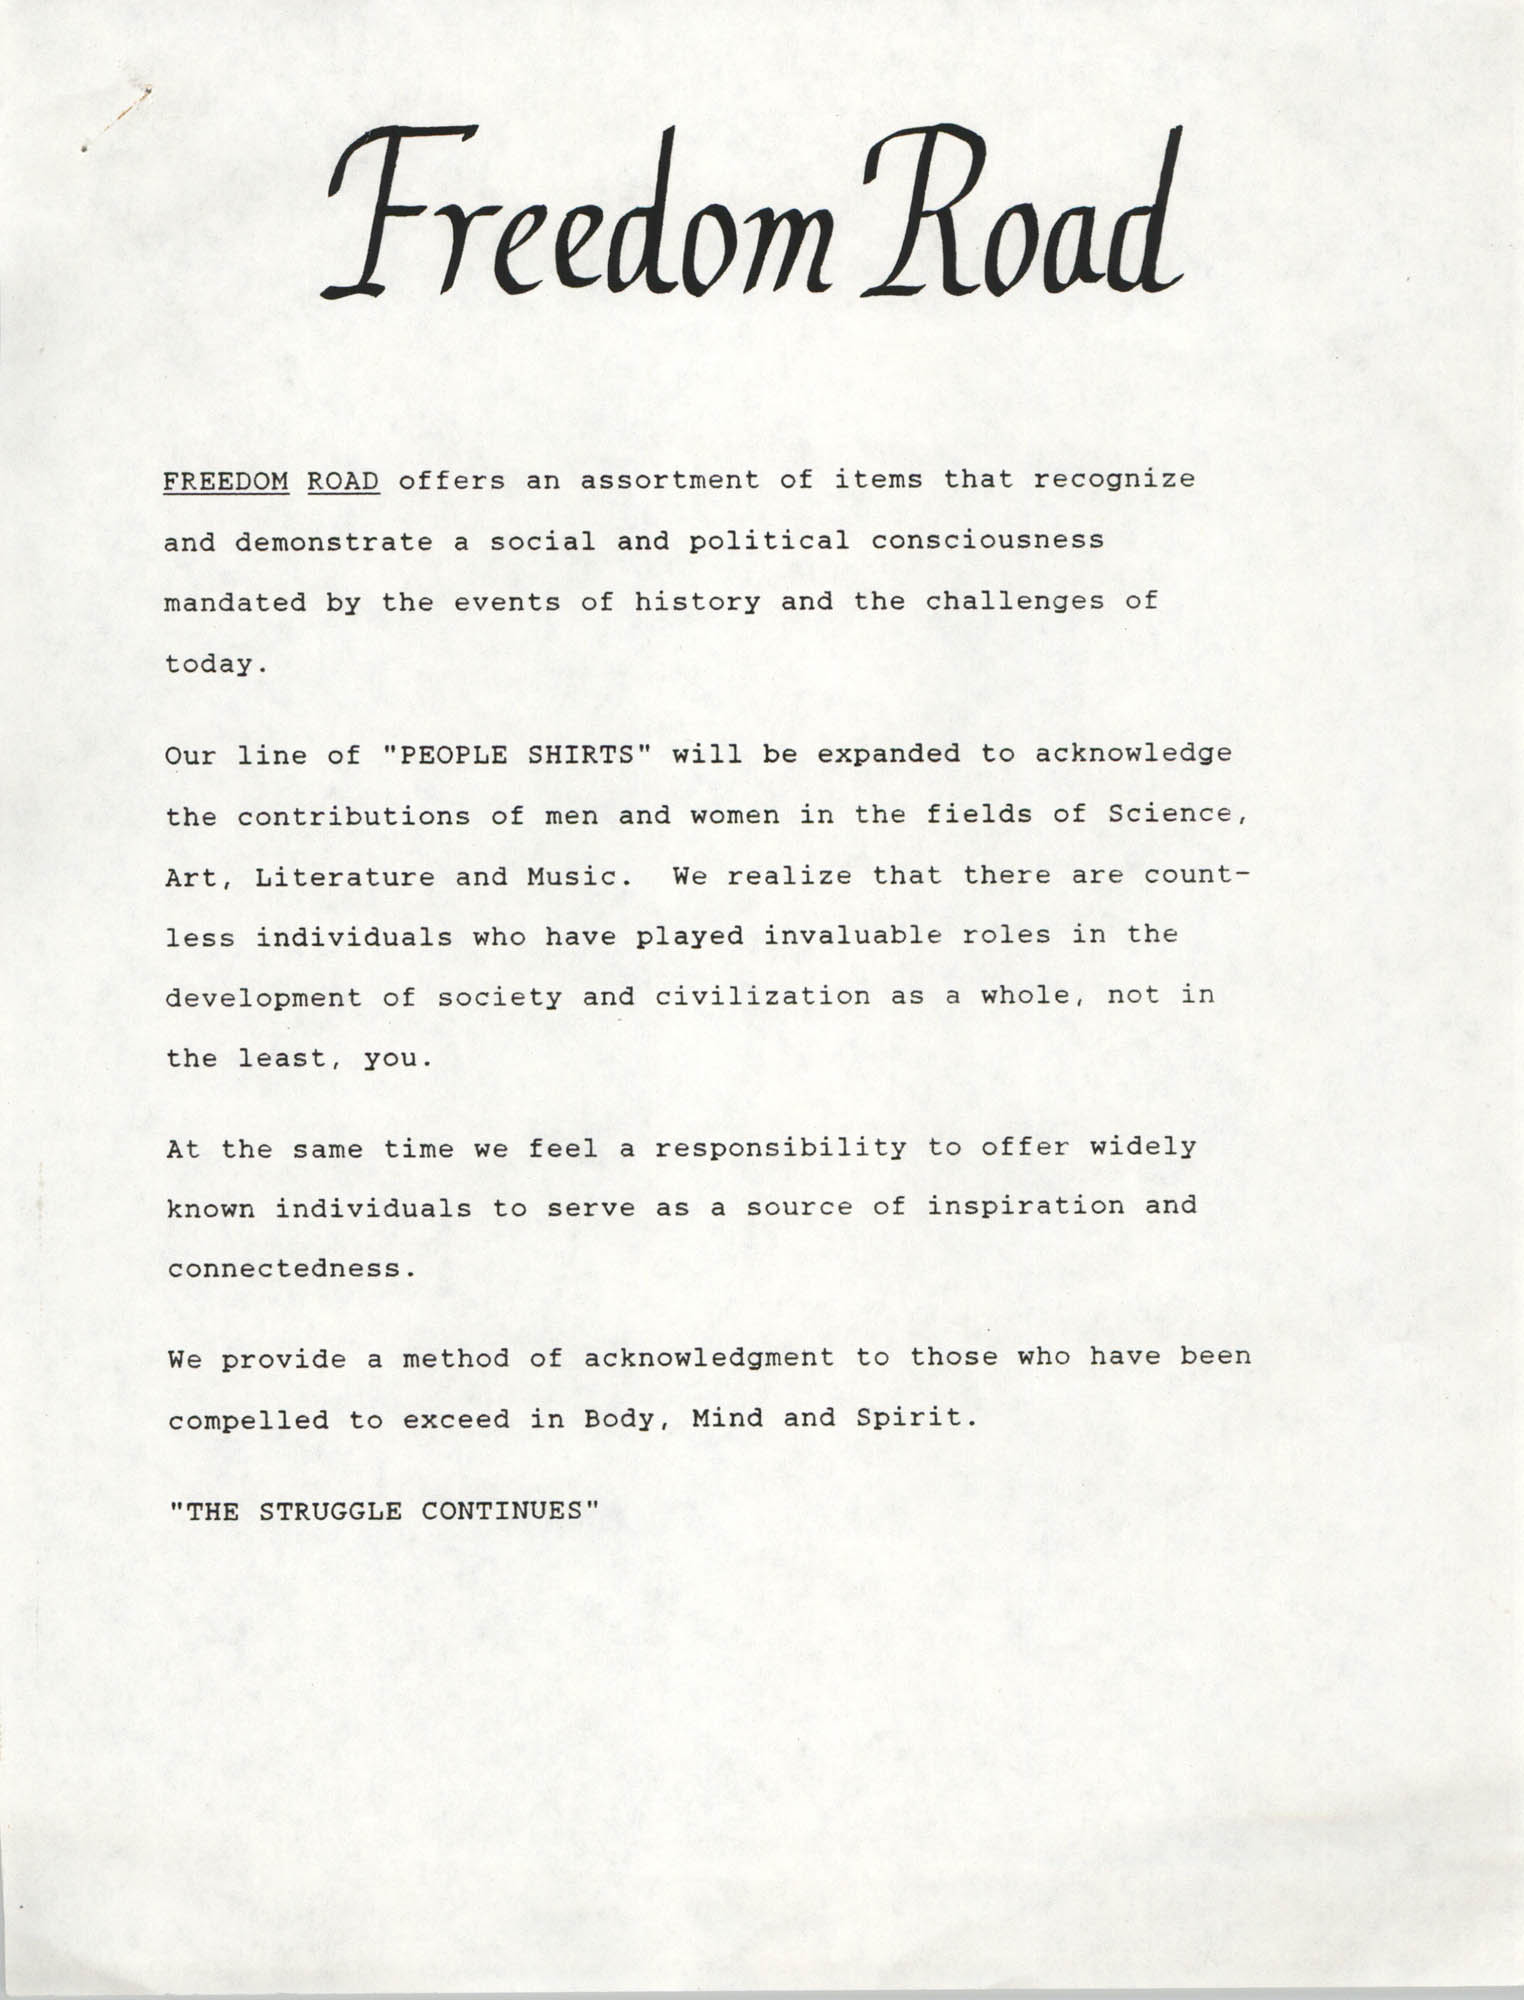 Freedom Road Mission and Order Form